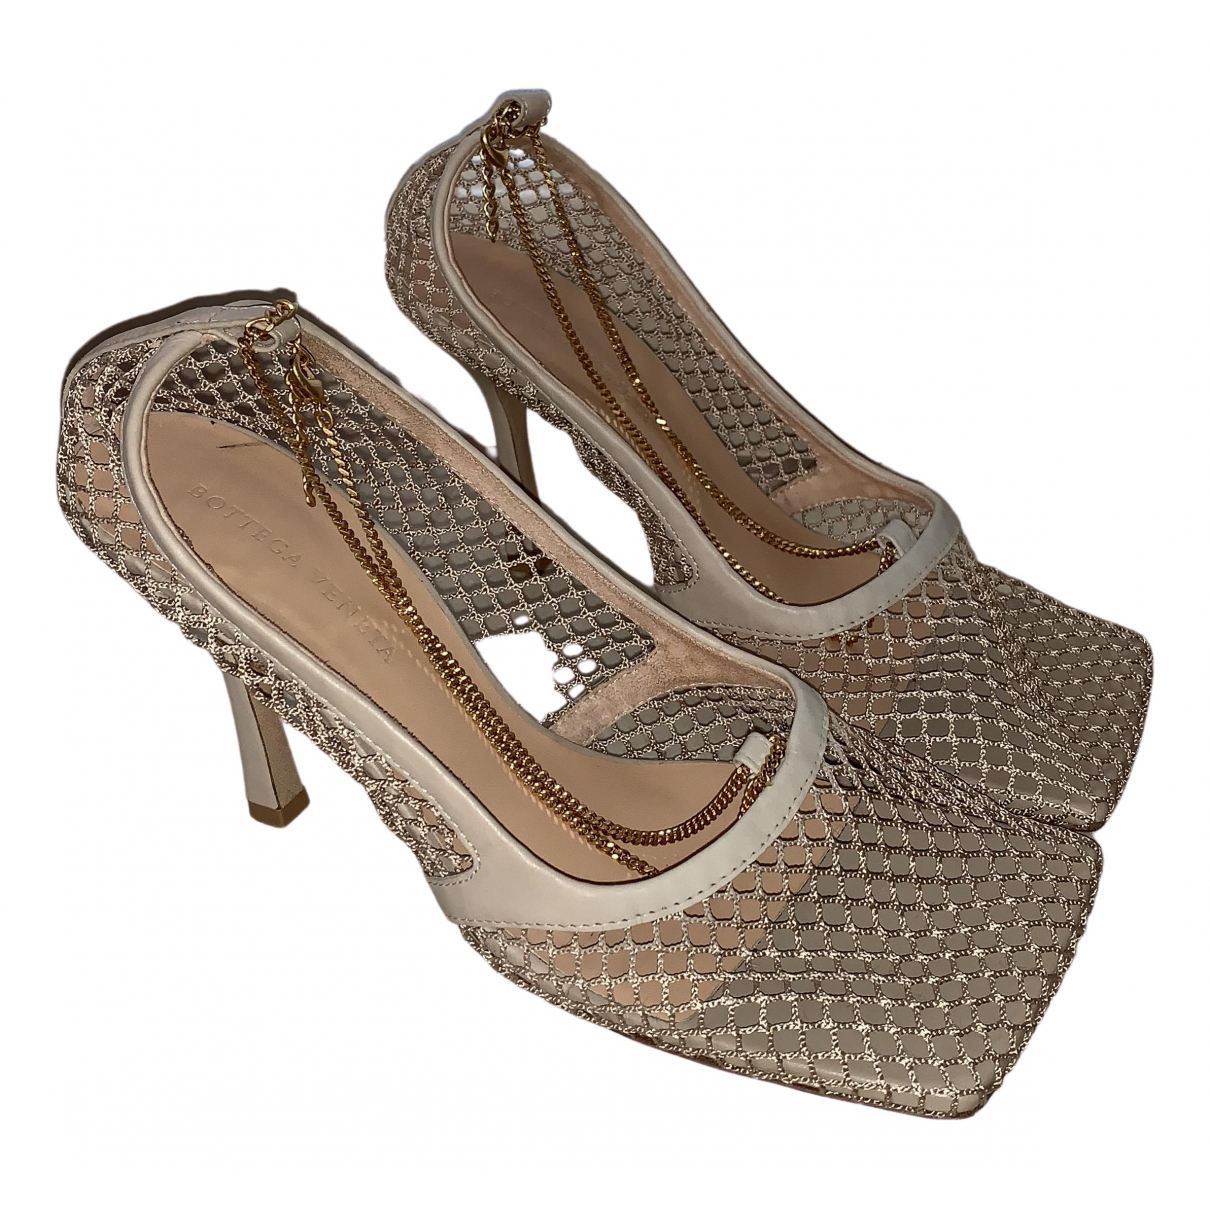 Bottega Veneta Stretch Beige Leather Heels for Women 39 EU